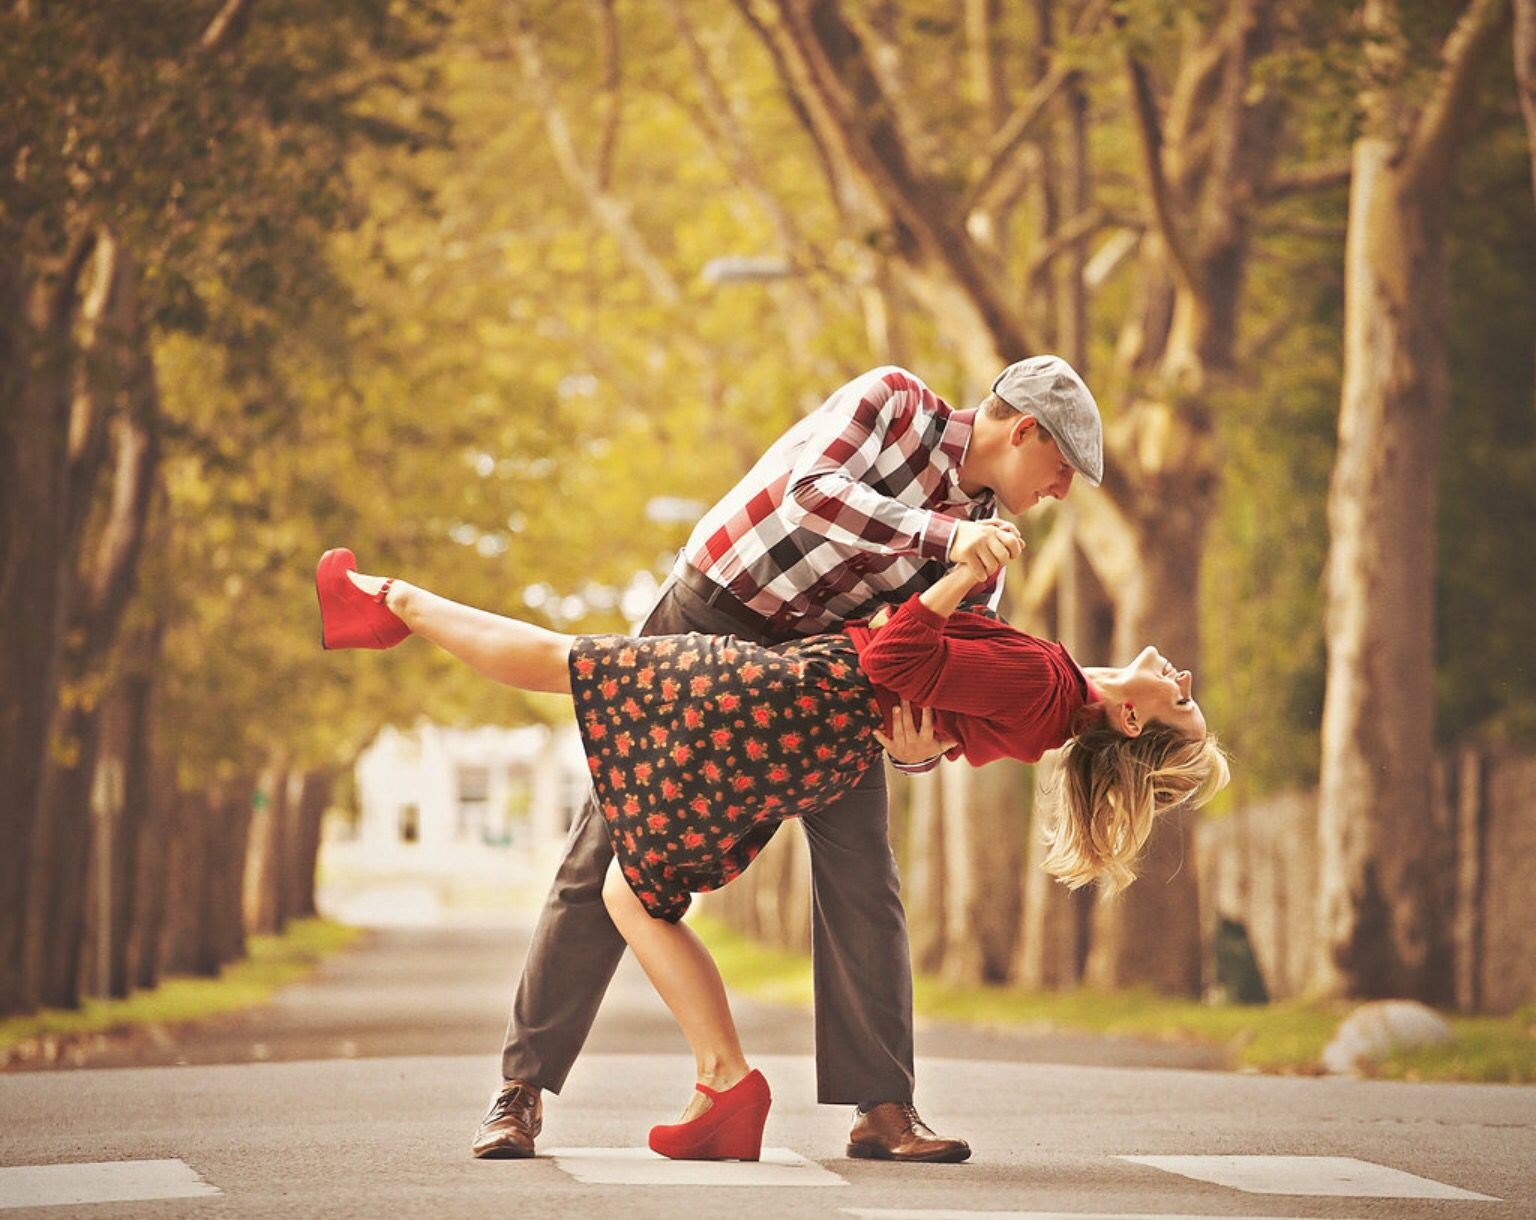 The Notebook engagement shoot, Noah and Allie dancing in ...